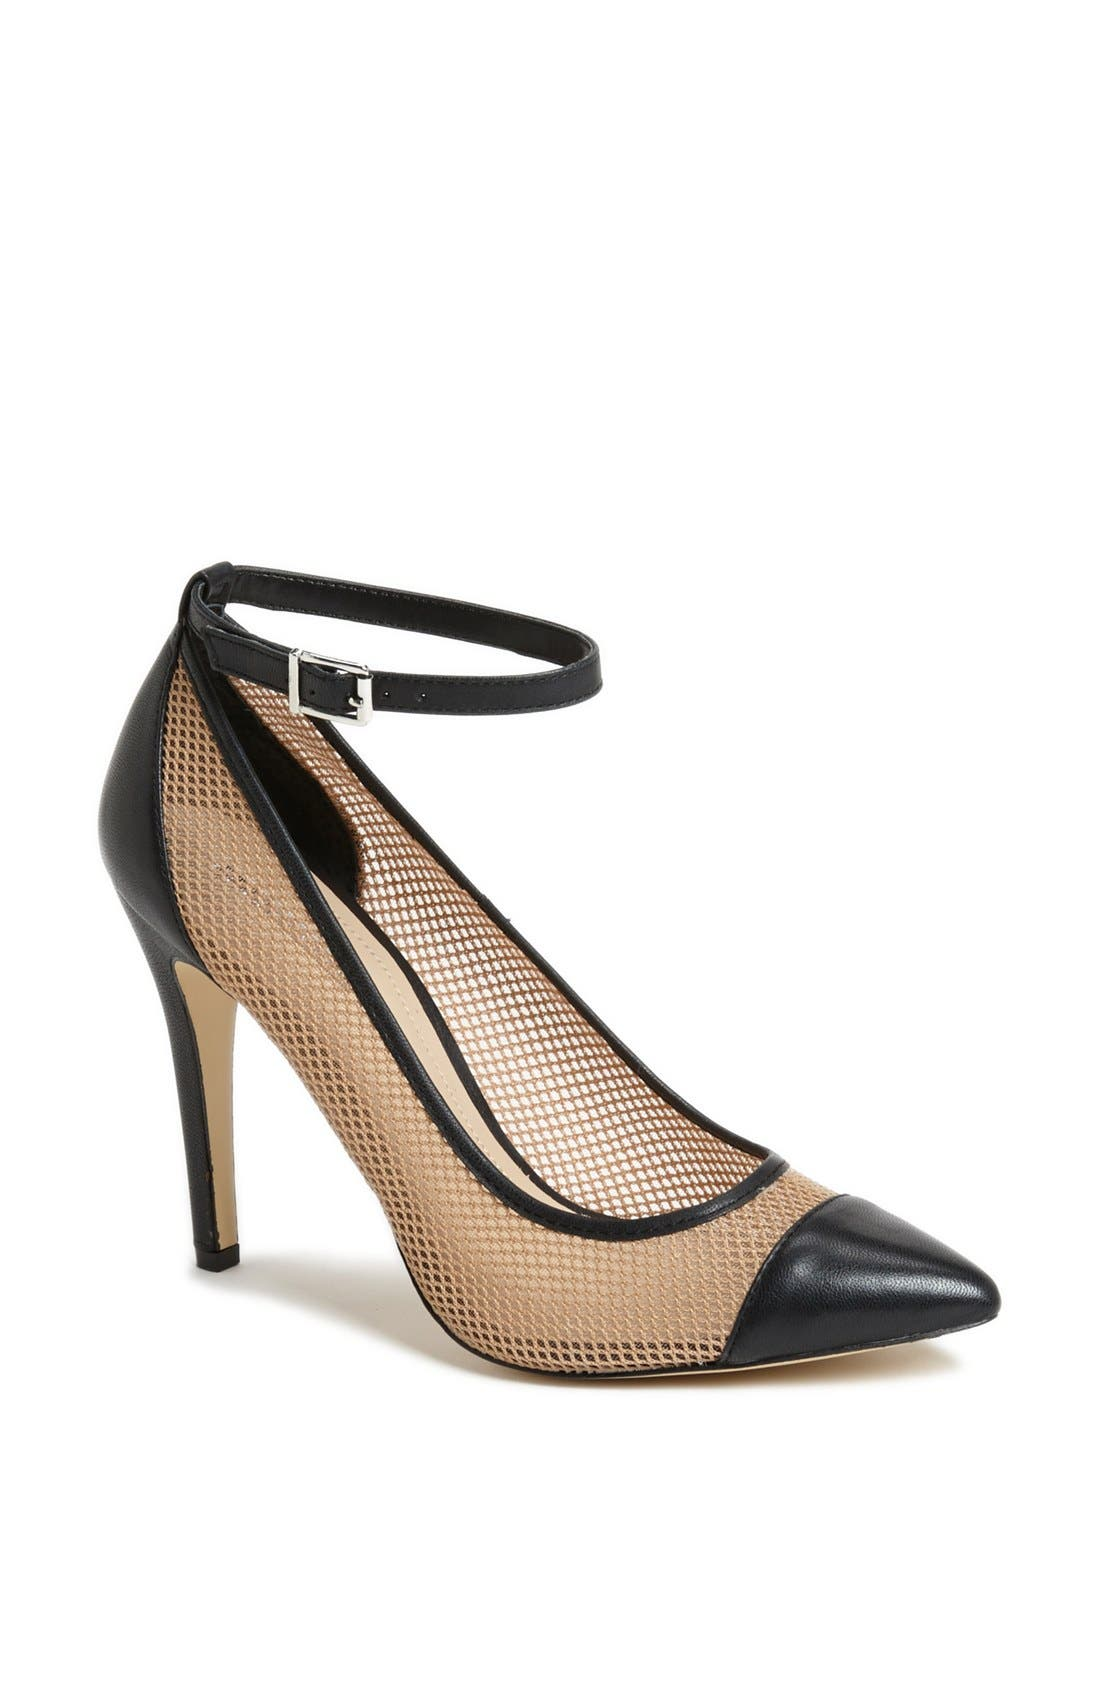 Alternate Image 1 Selected - BCBGeneration 'Cynthia' Pump